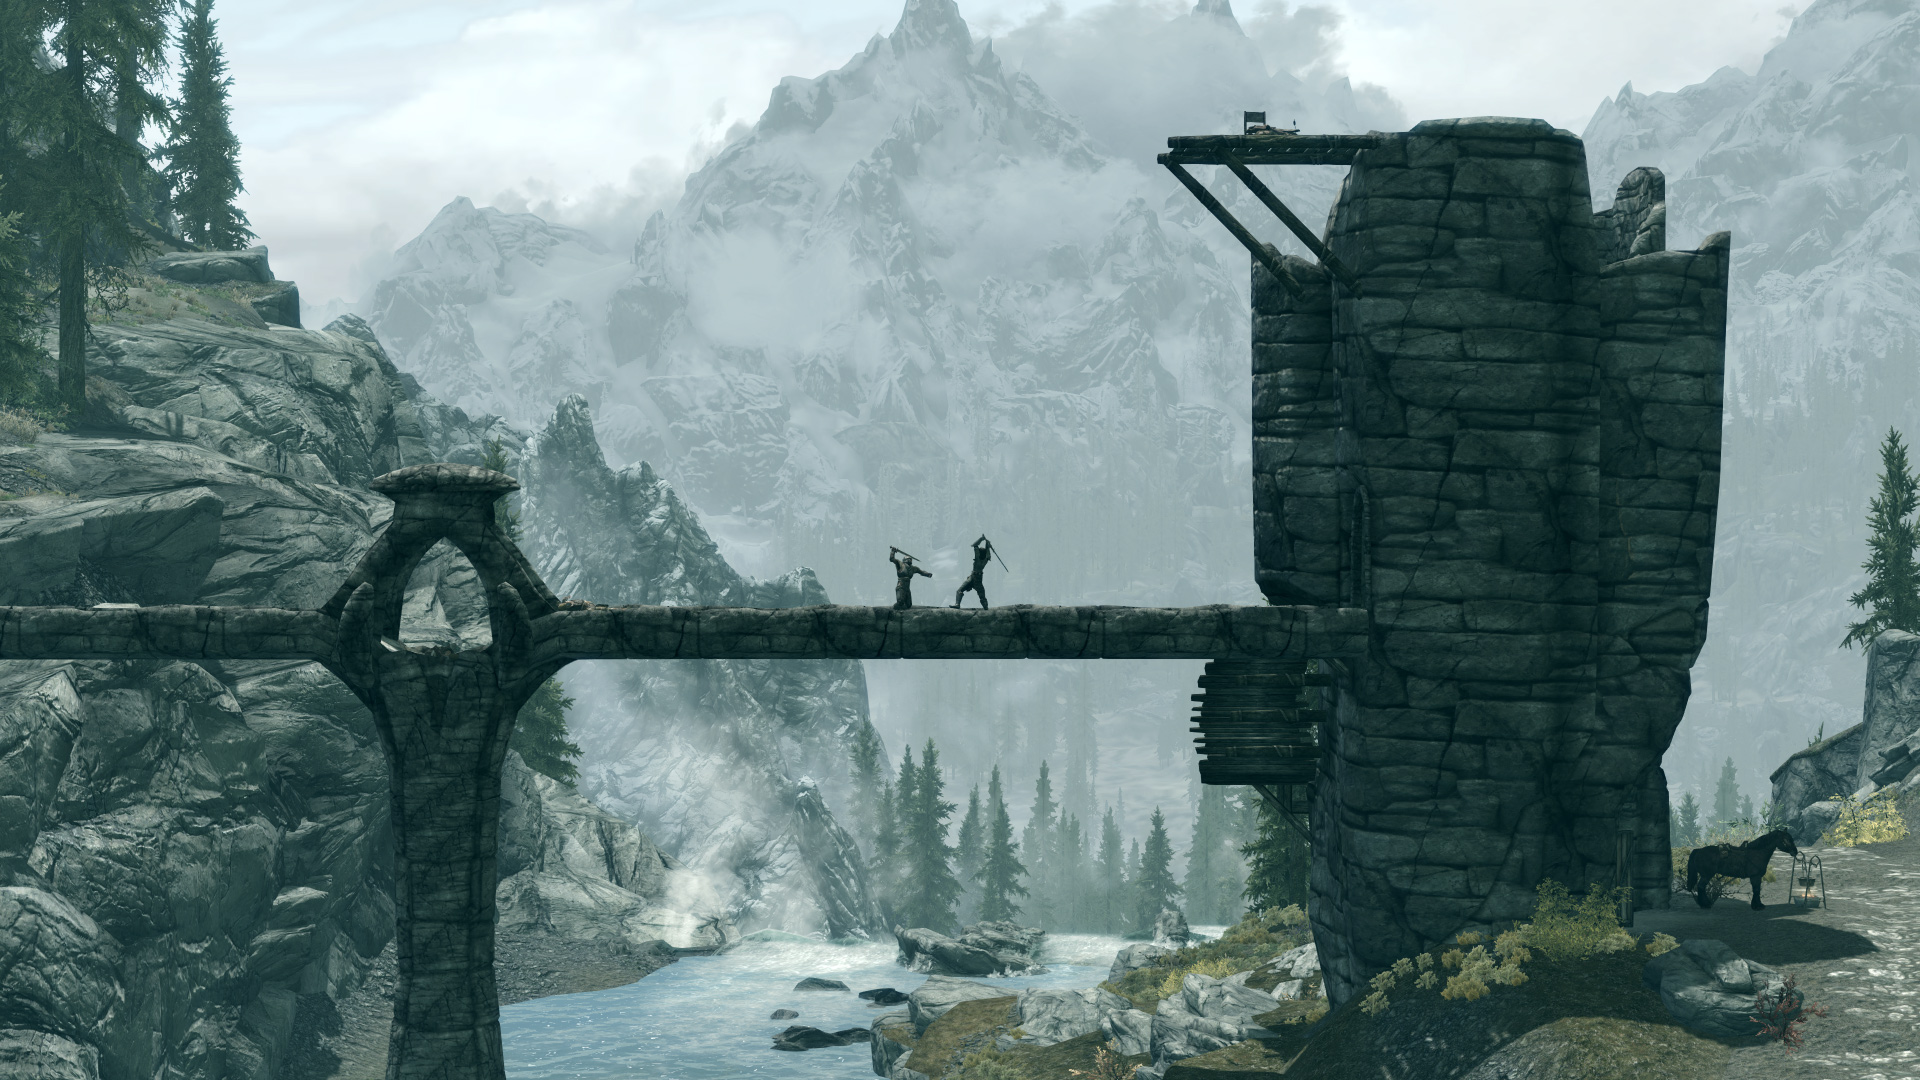 Just for you 10 full HD Skyrim wallpaper backgrounds Oh how I loved 1920x1080